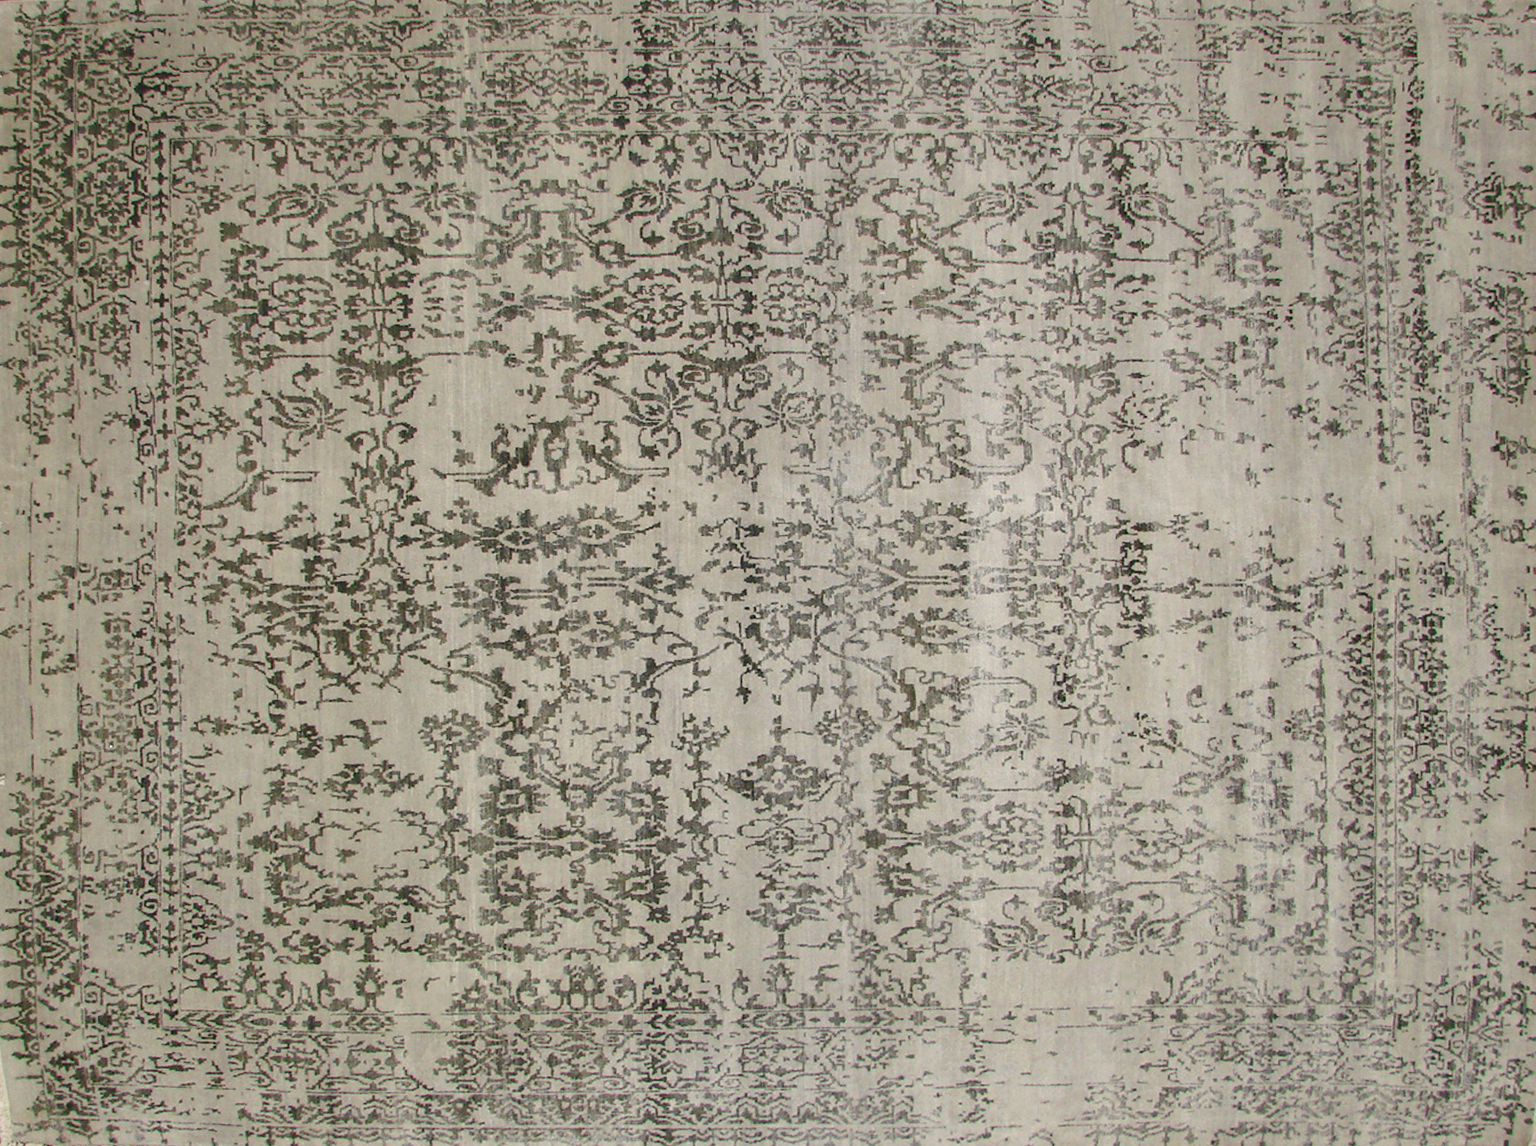 8x10 Contemporary Hand Knotted Wool Area Rug - MR19132